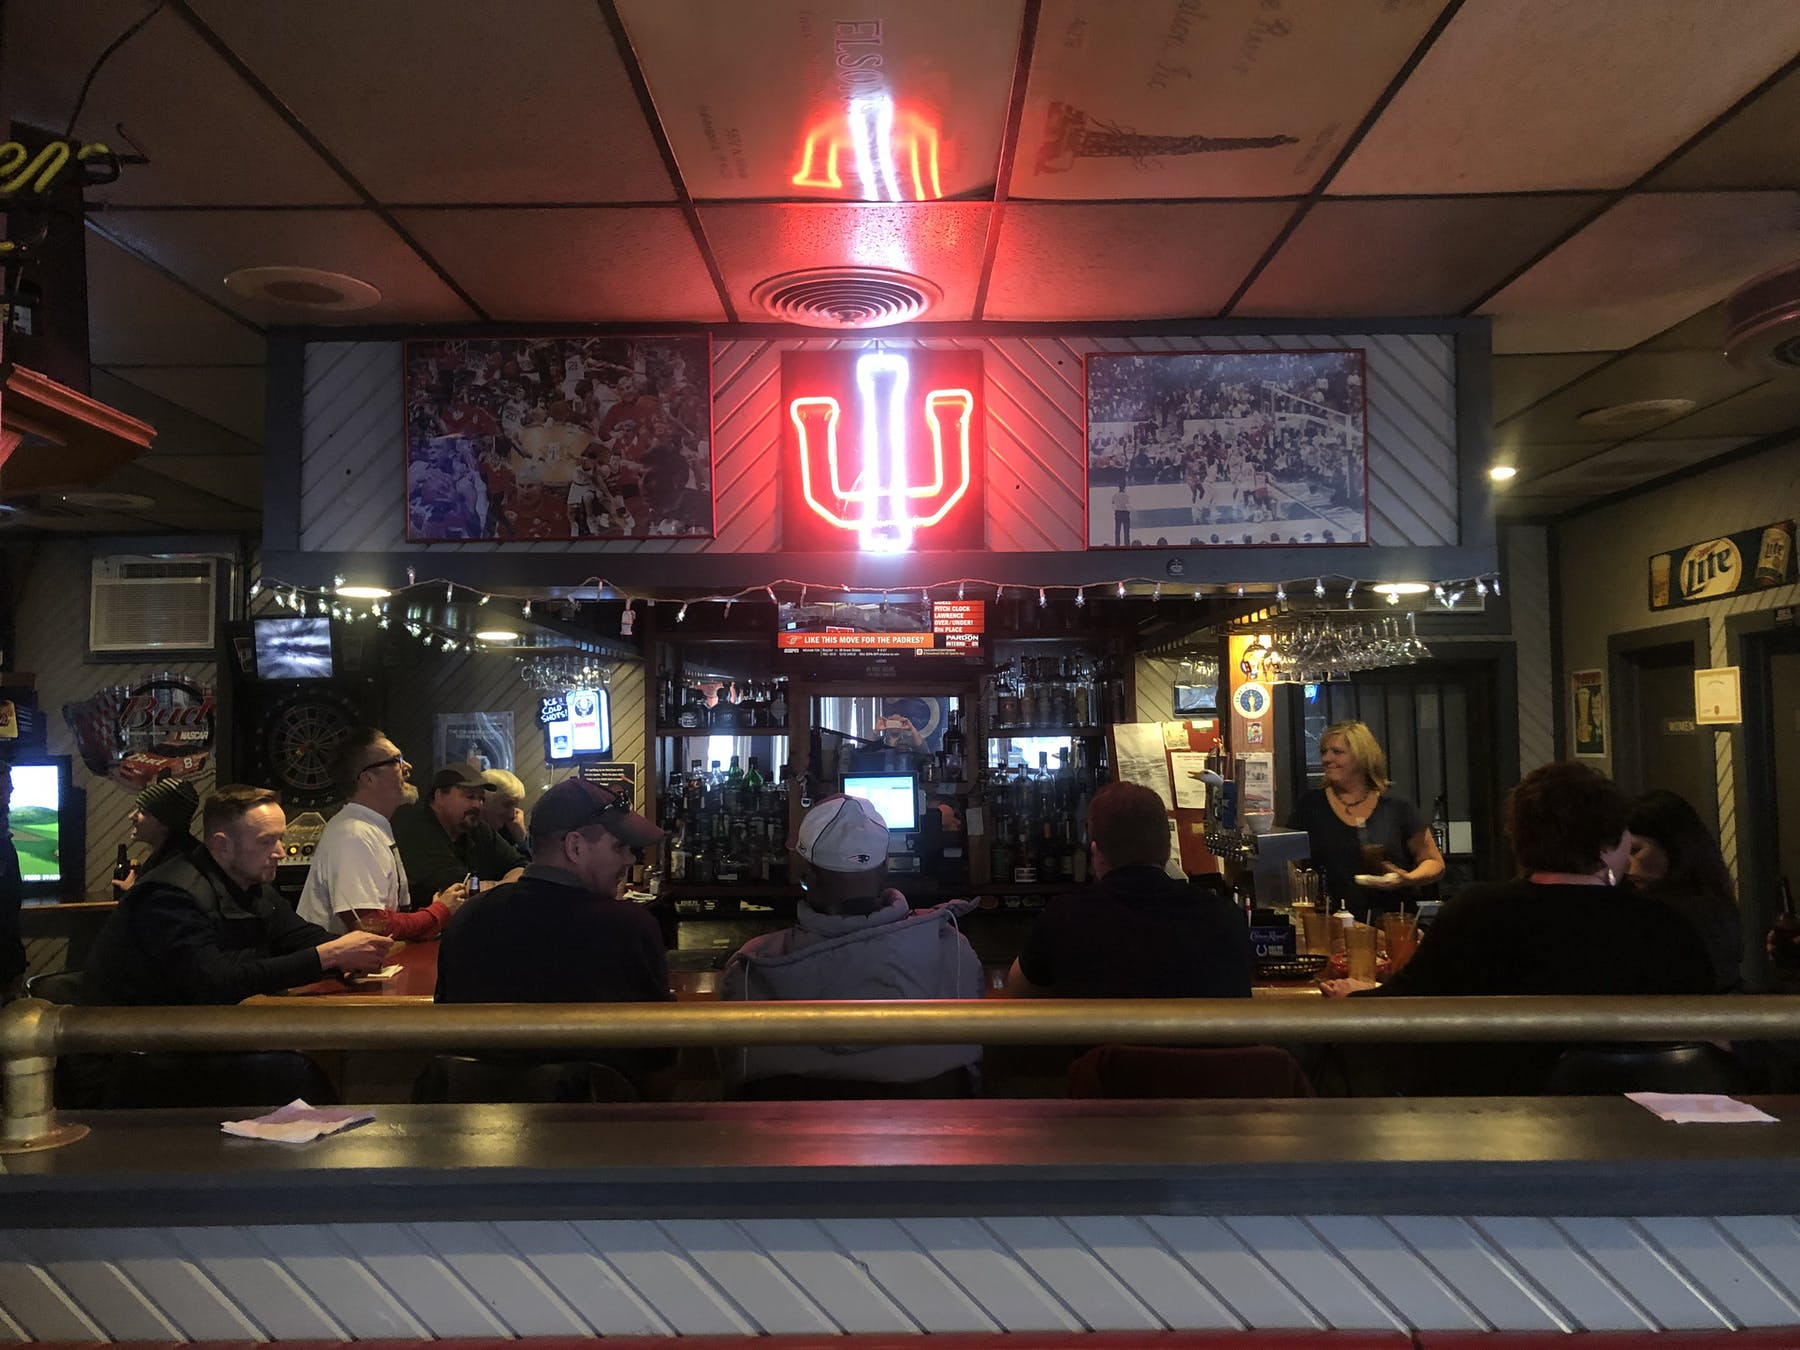 Darkly lit bar with light up IU sign on wall.